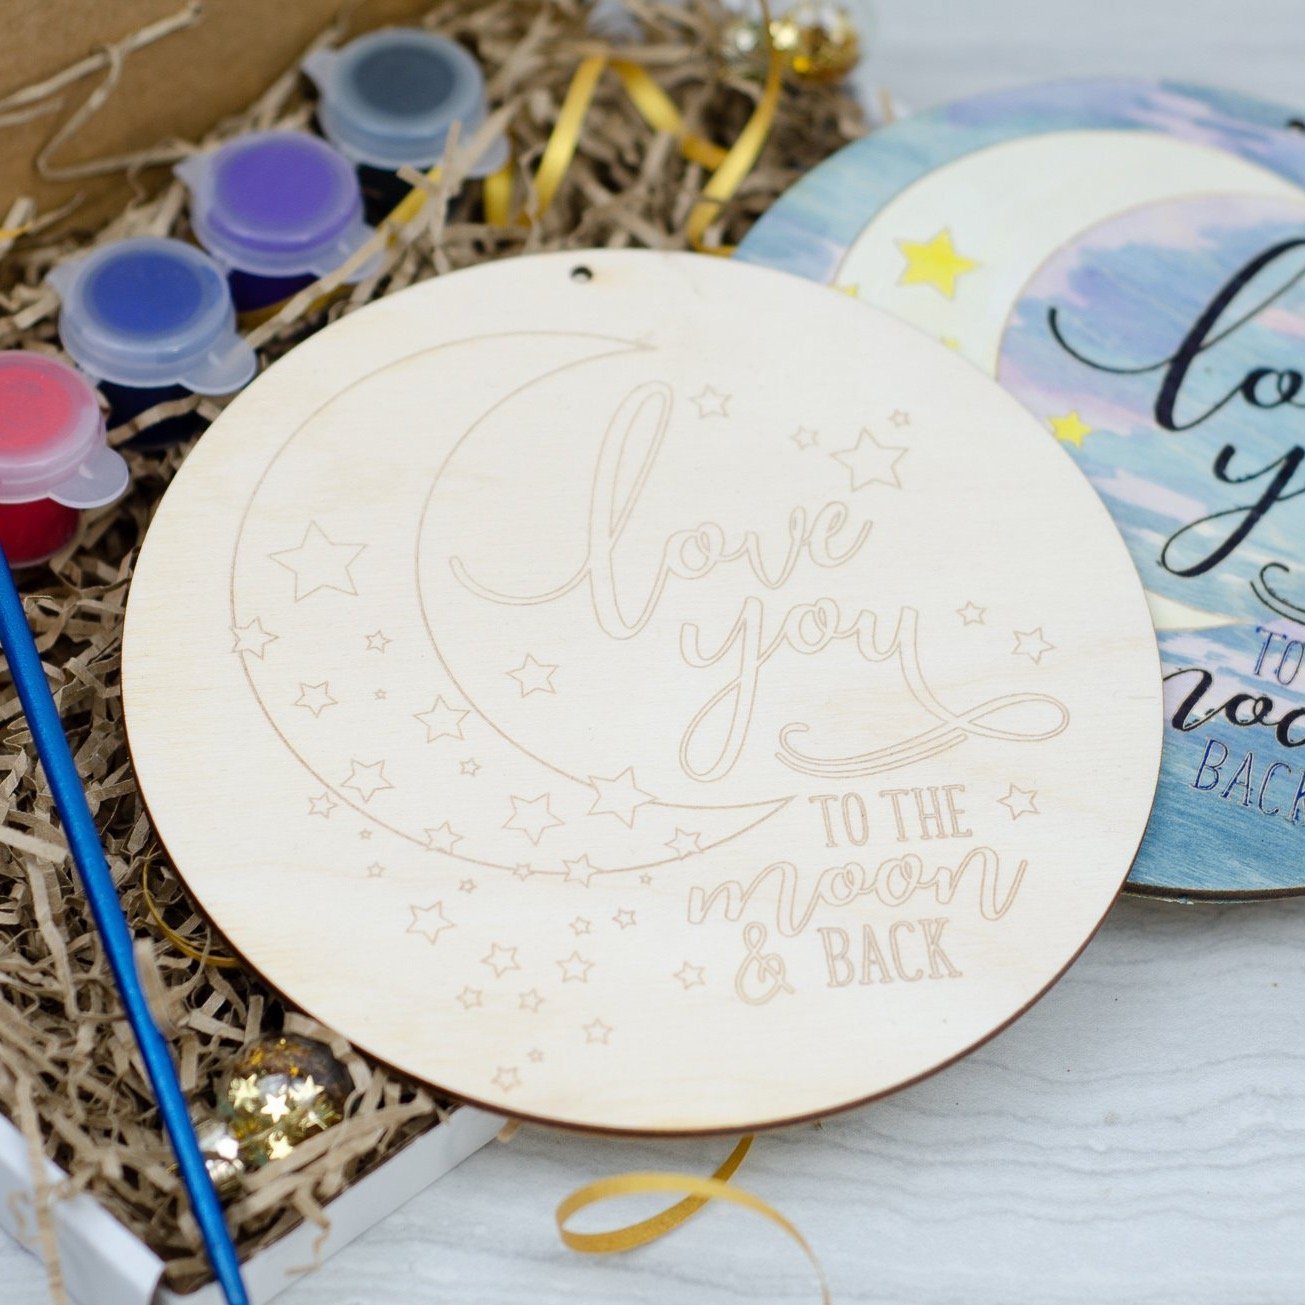 Love you to the moon and back painting kit